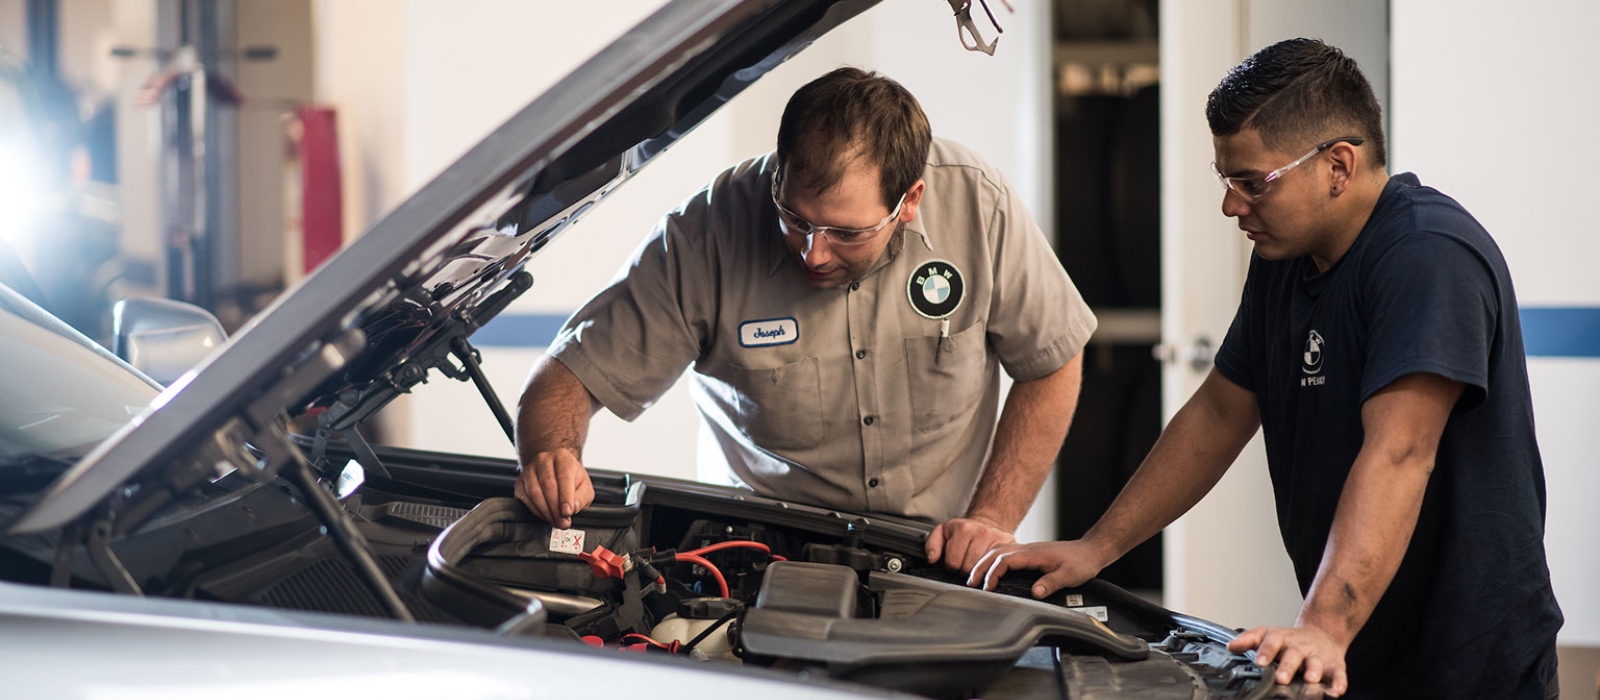 Hourly Rate vs Flat Rate: How Auto Mechanics Are Paid